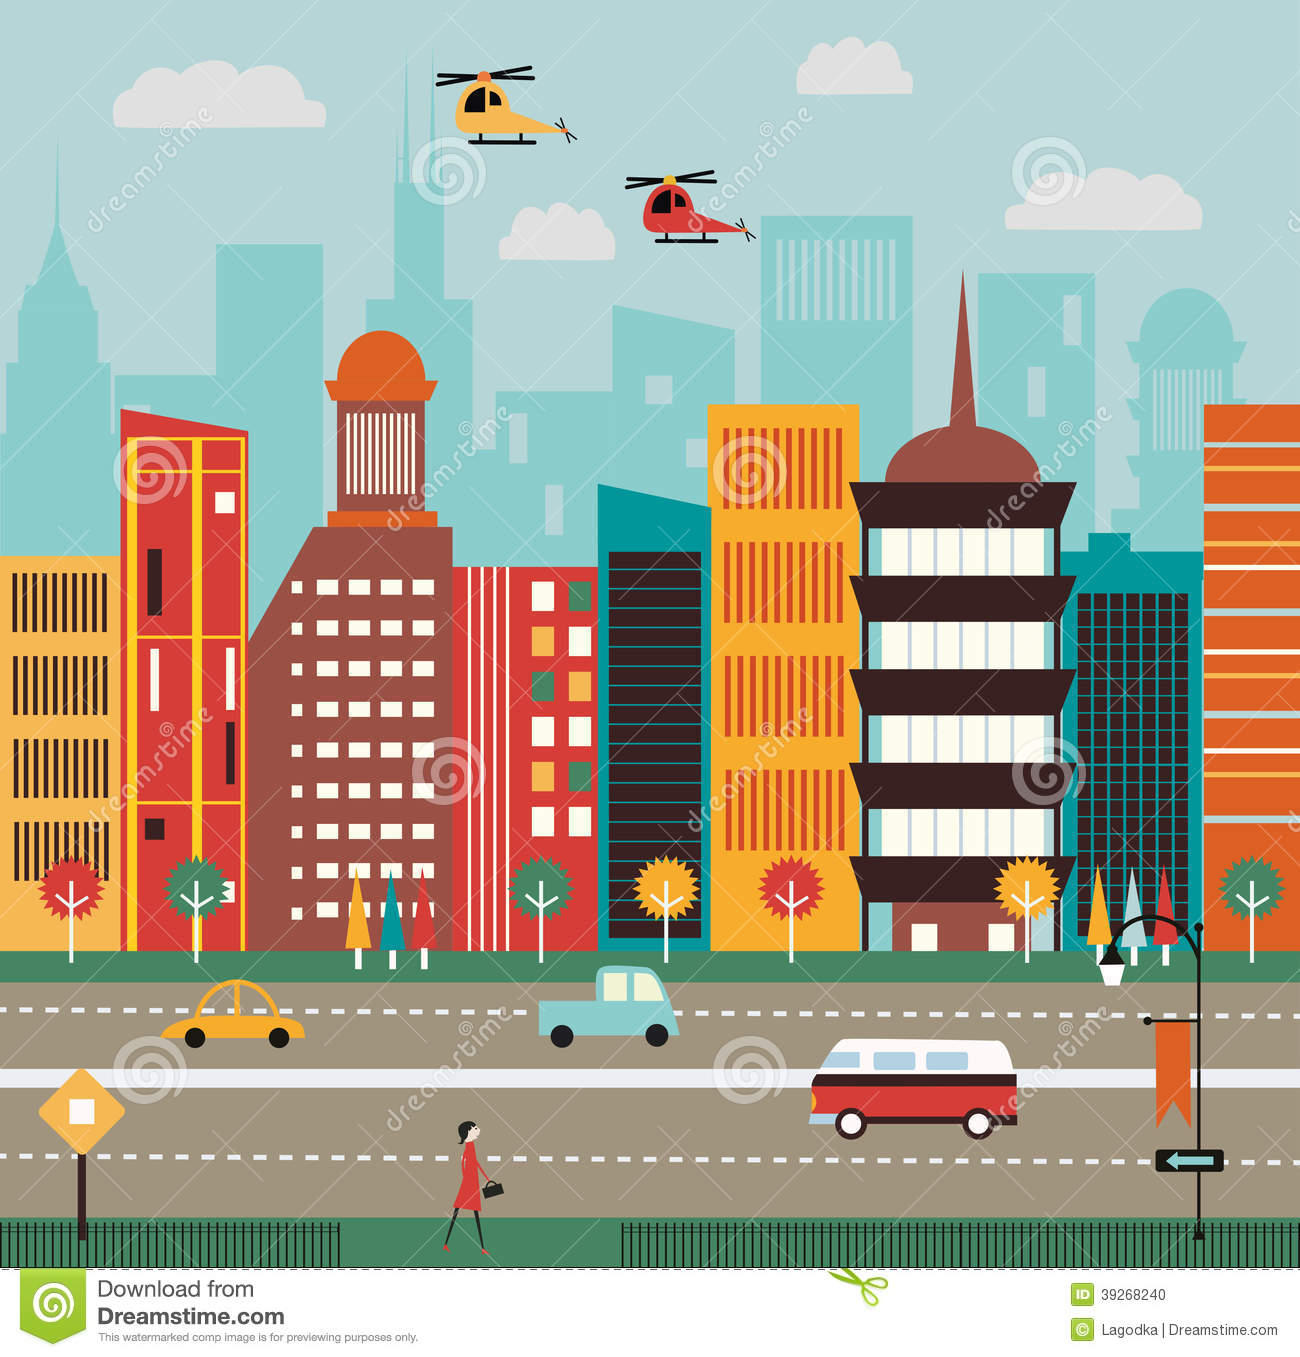 Place clipart city street  Clipart Big City Street